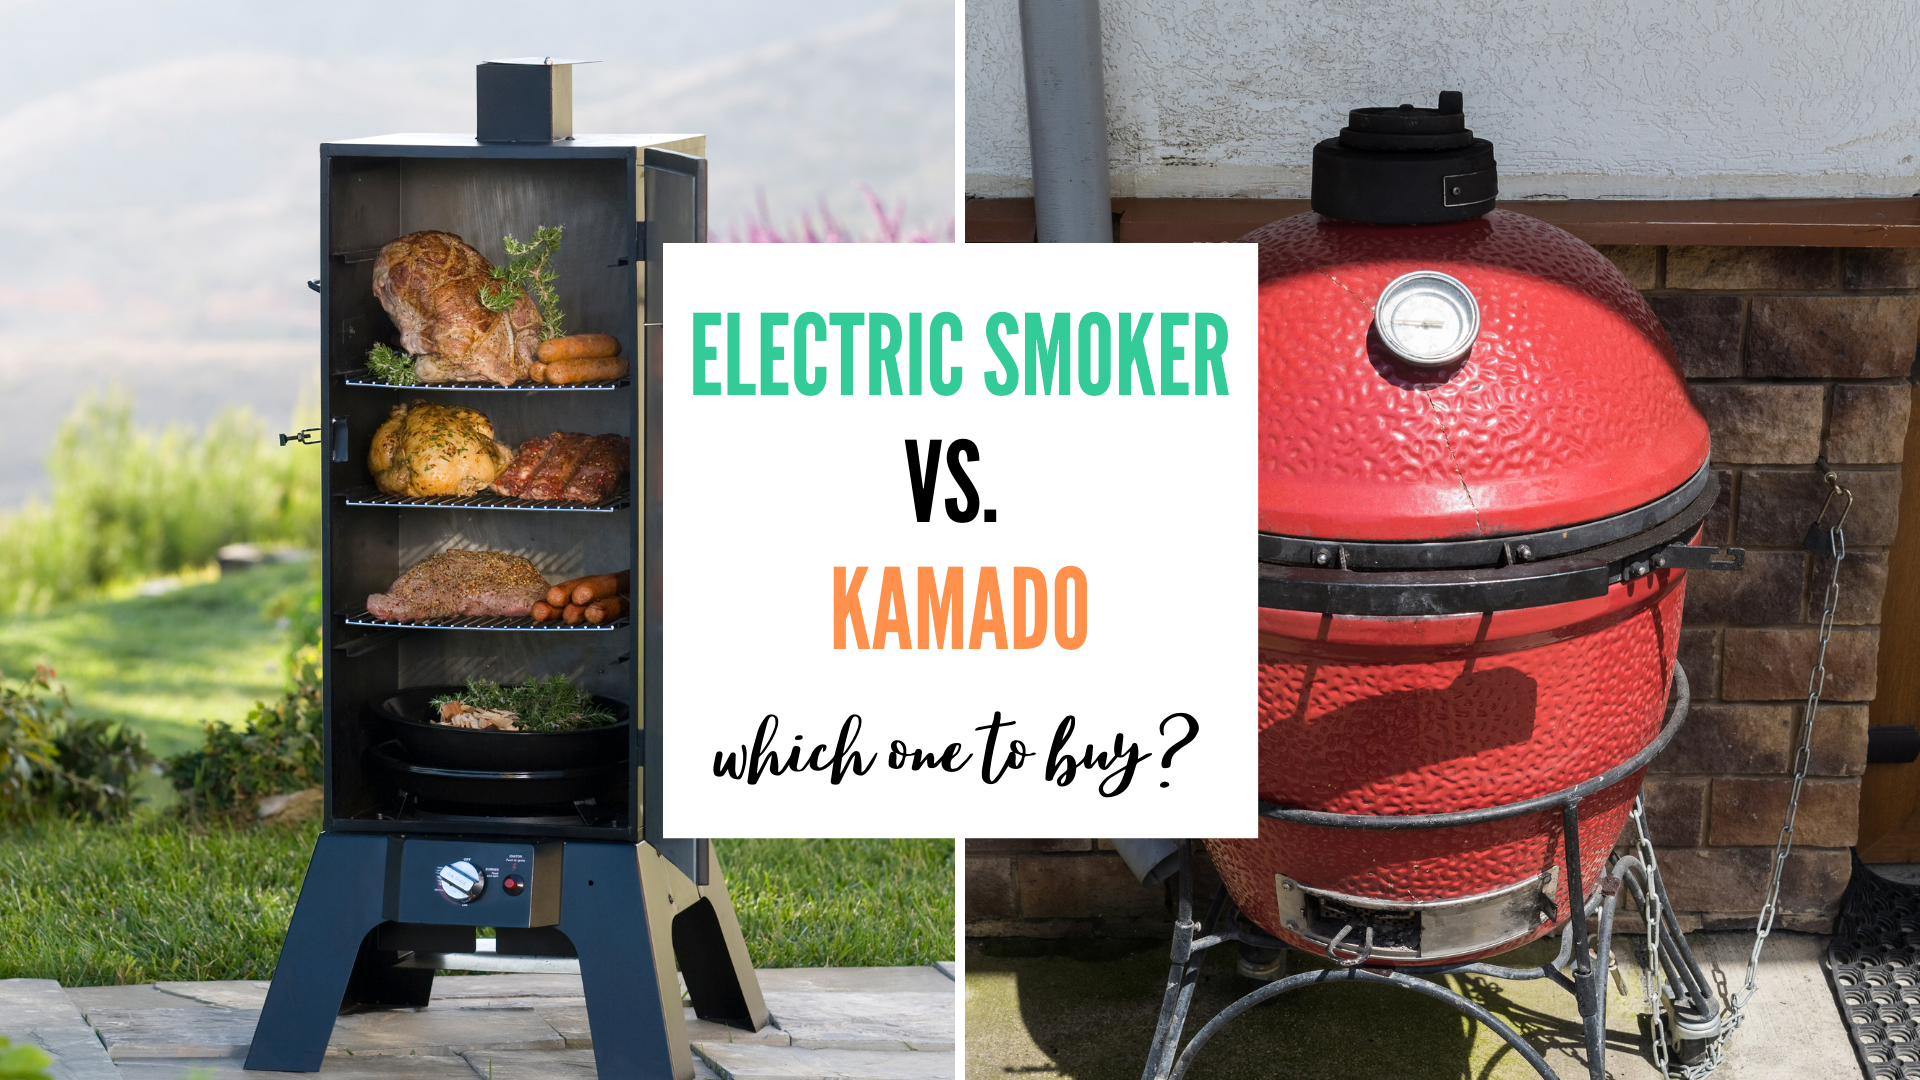 electric smoker vs kamado which one to buy comparison